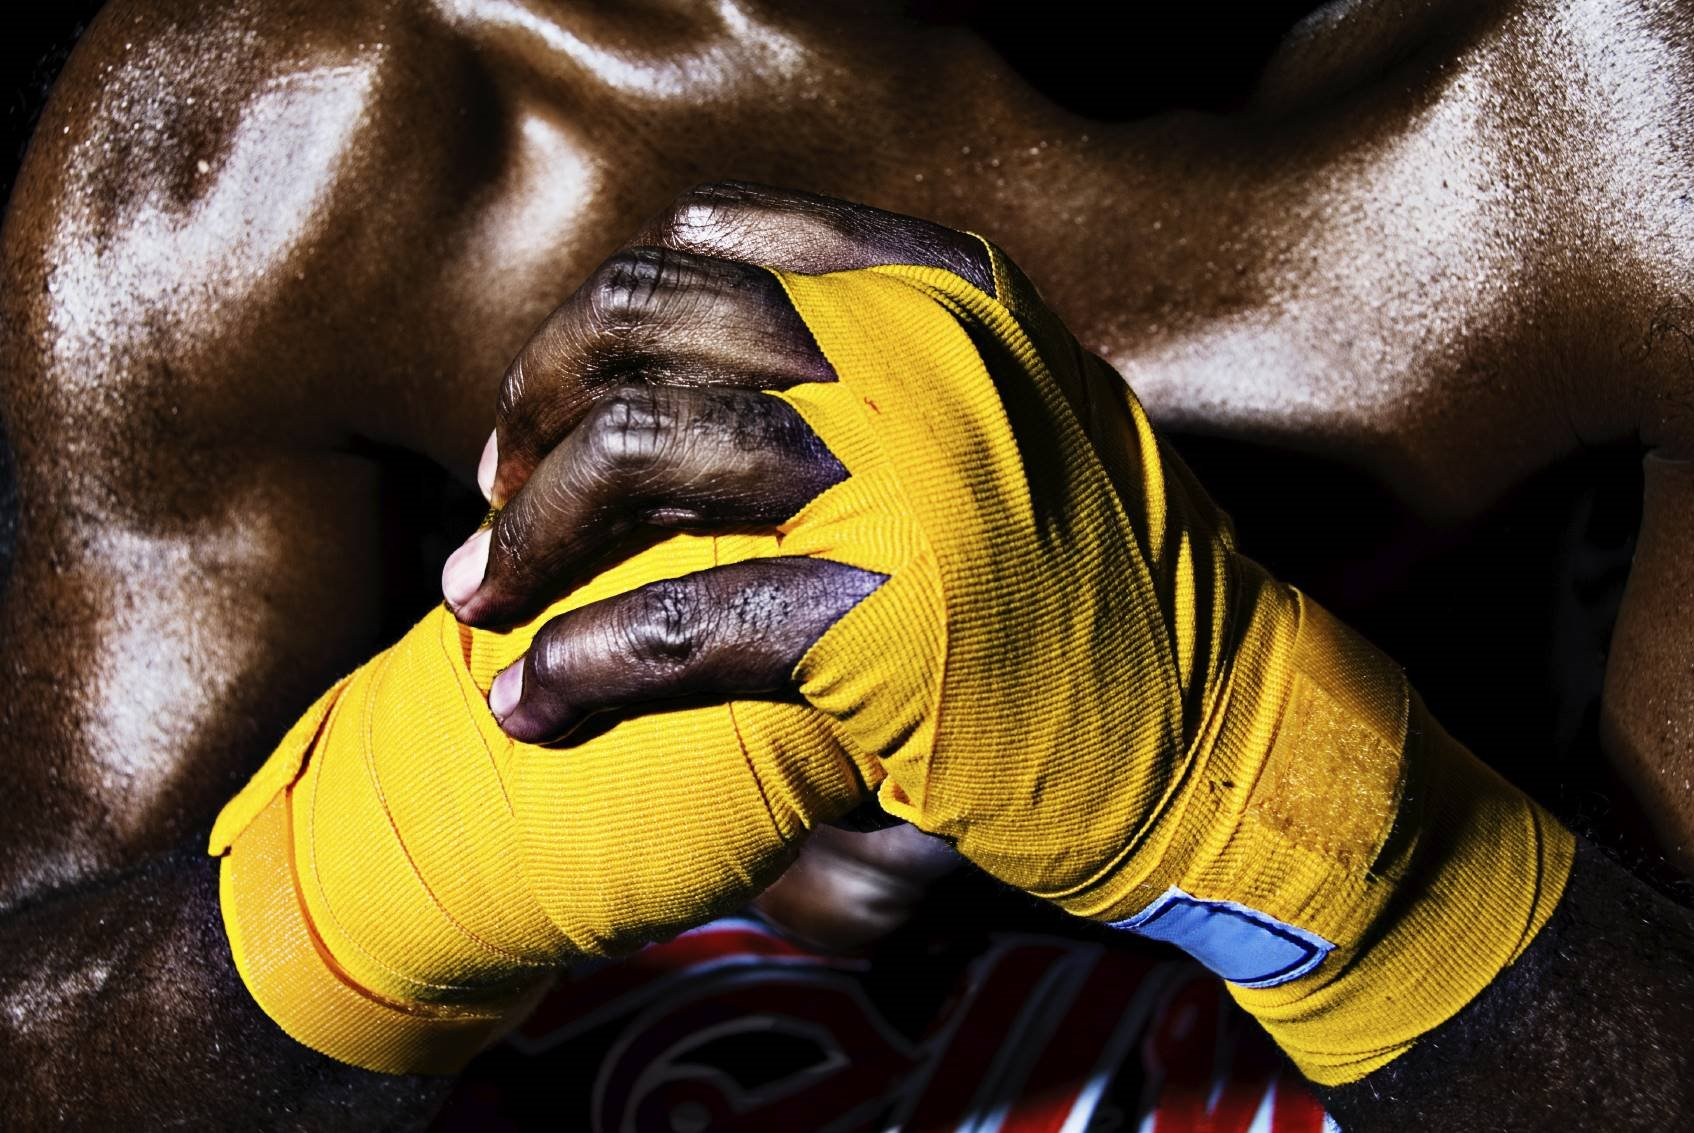 Sport Wallpaper Boxing: Boxing Wallpaper And Background Image